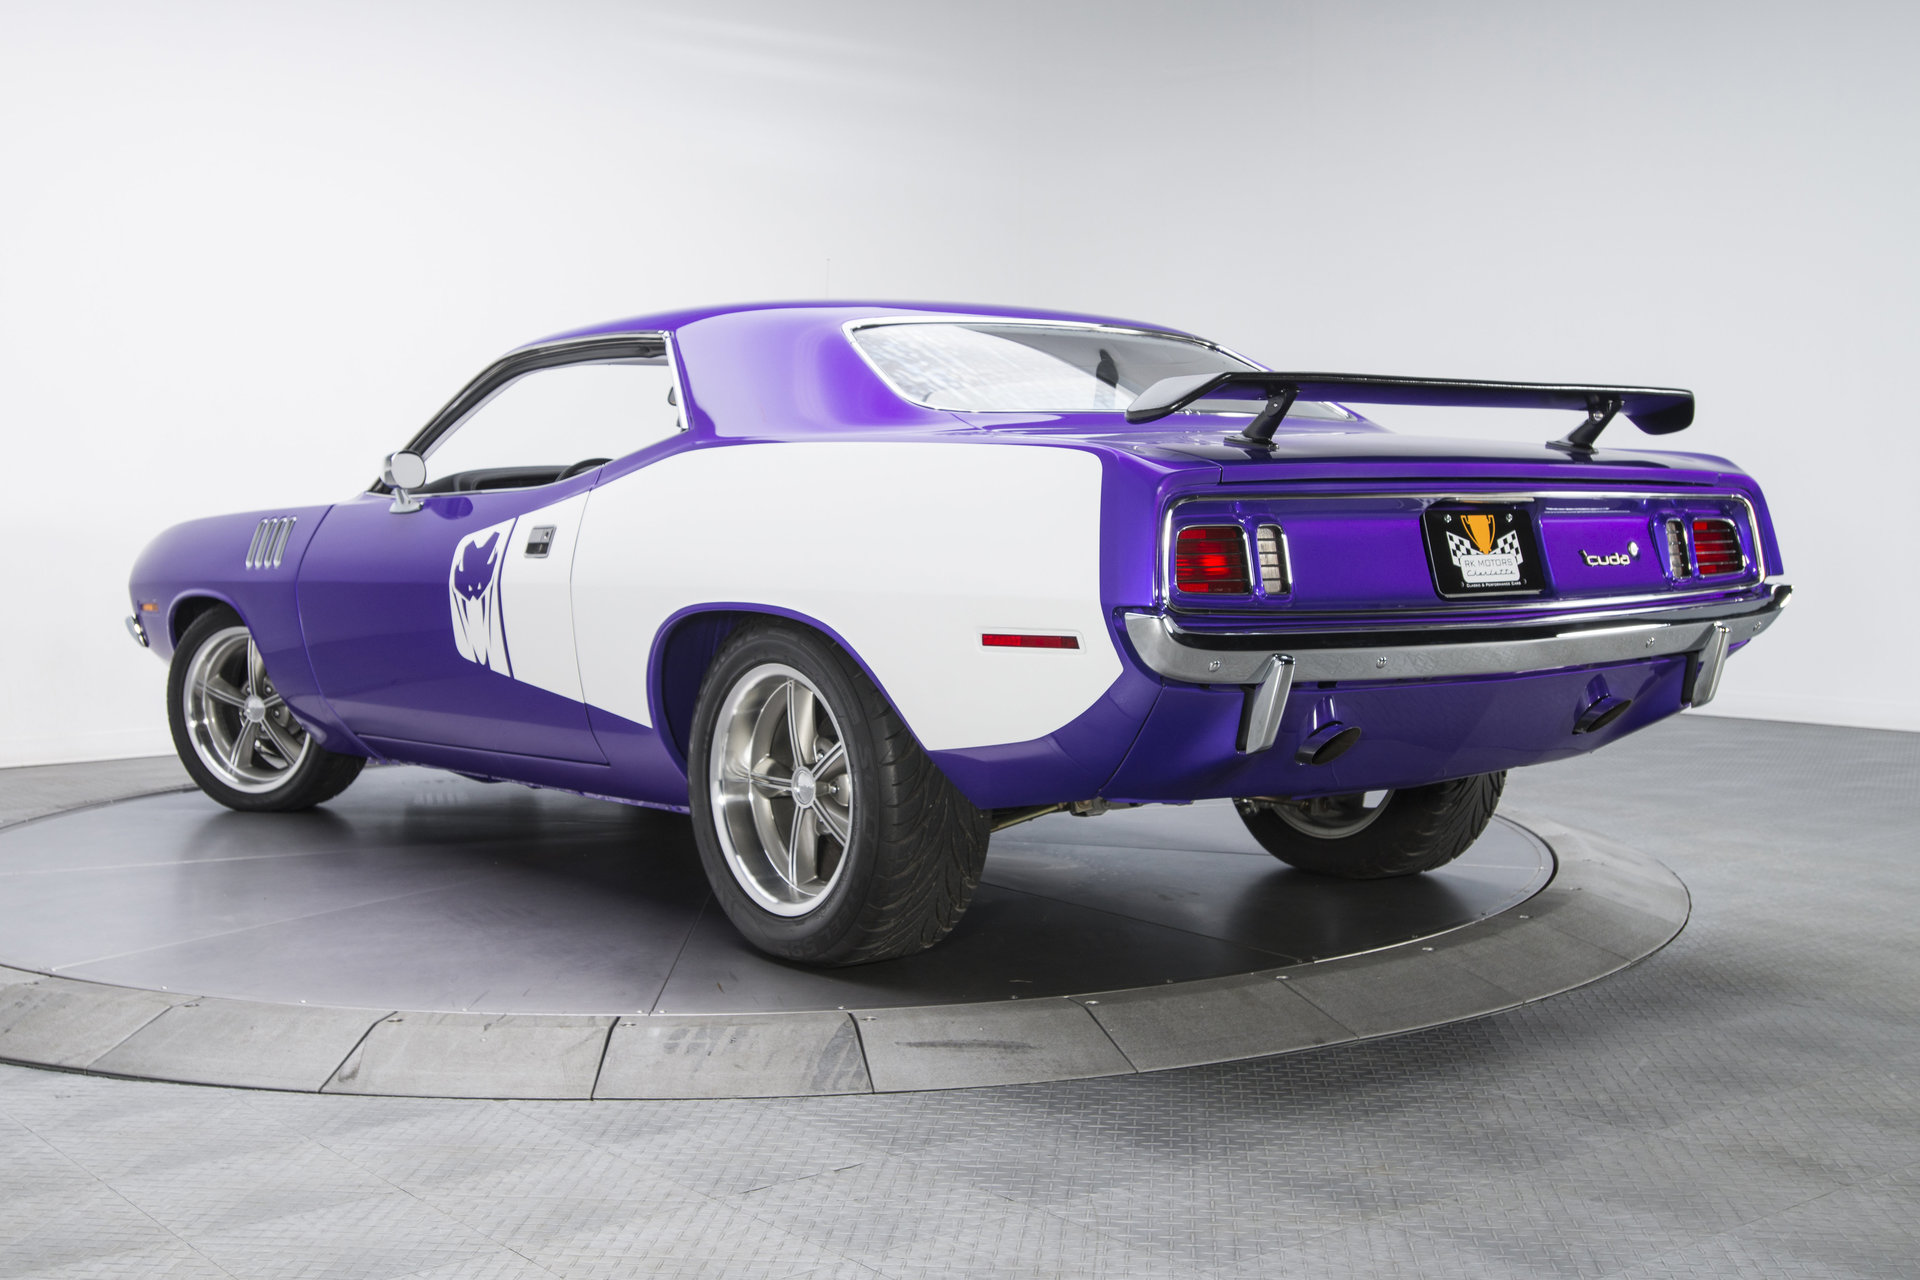 1973 Plymouth Cuda For Sale: 135975 1973 Plymouth Barracuda RK Motors Classic Cars For Sale